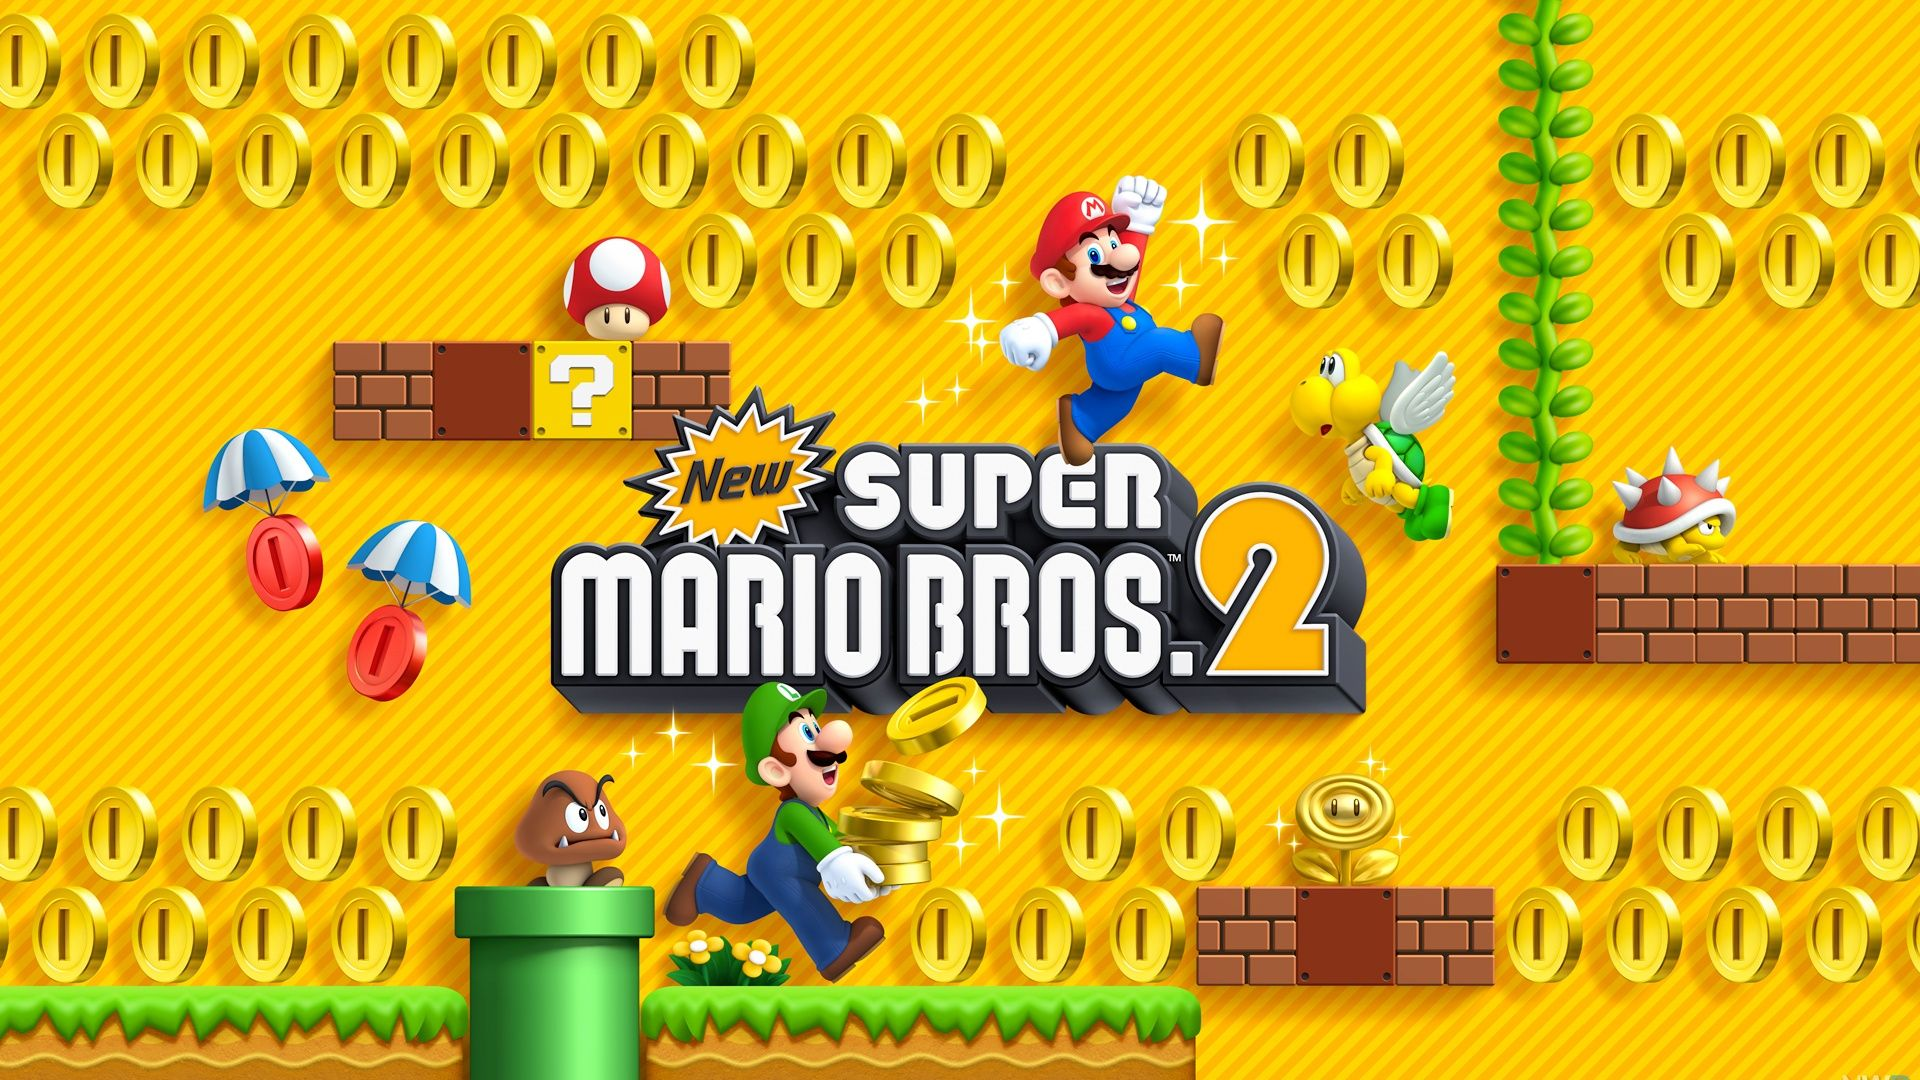 New Super Mario Bros 2 Wallpapers Top Free New Super Mario Bros